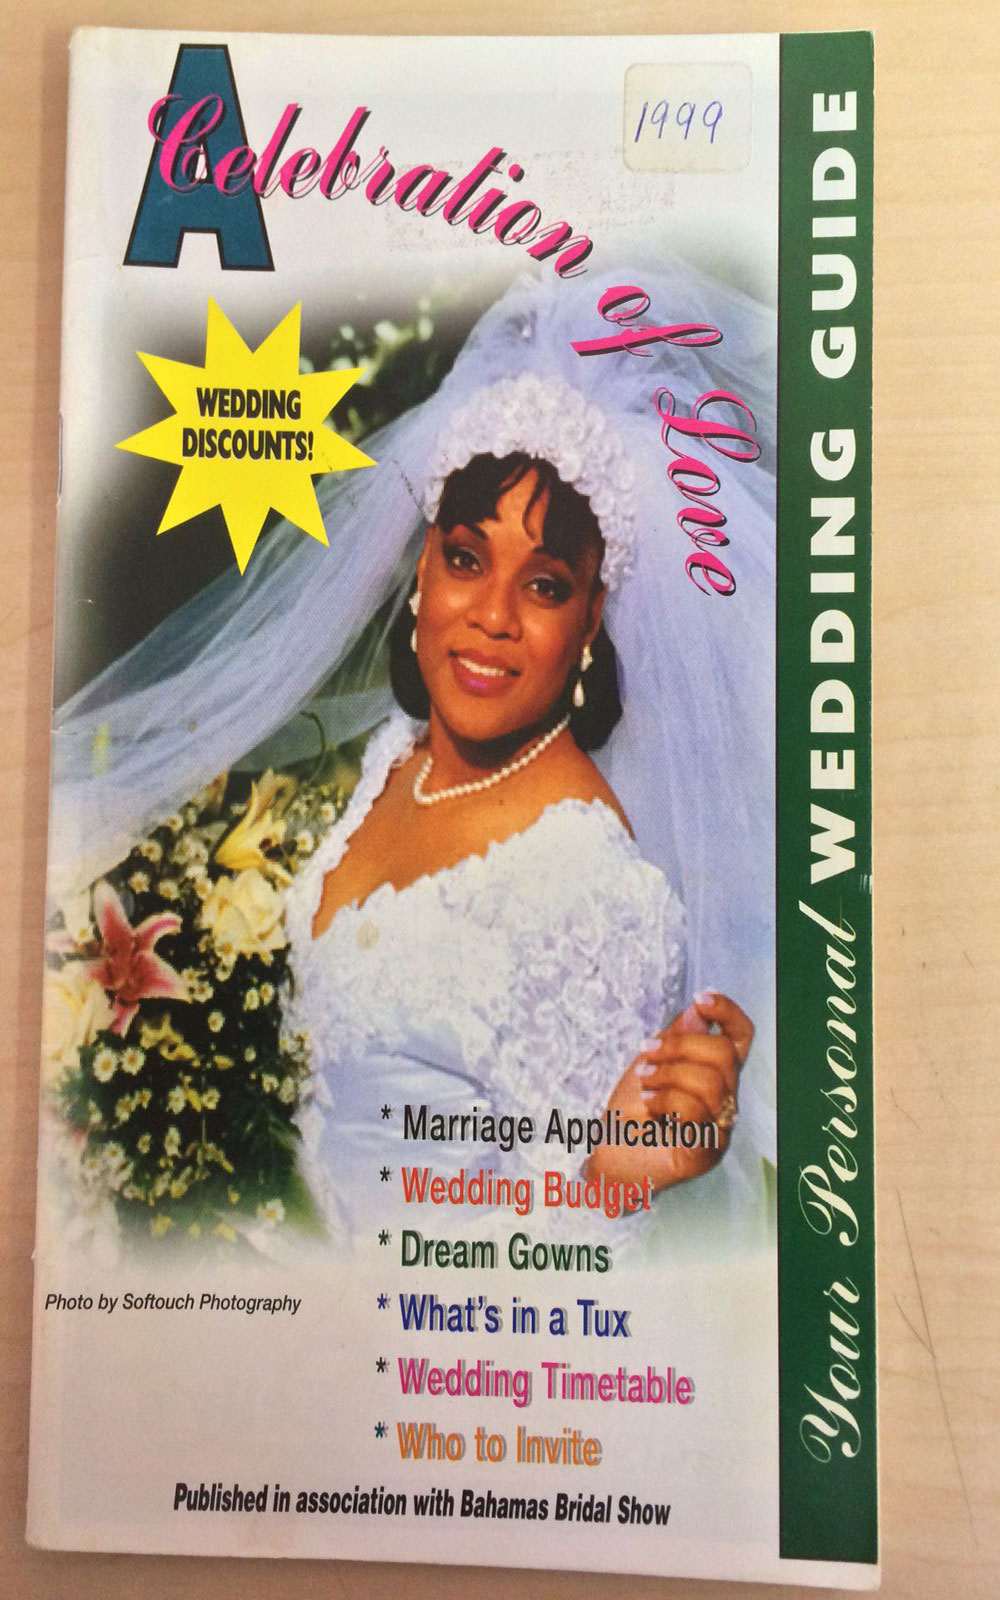 The Wedding Guide 1999-2000